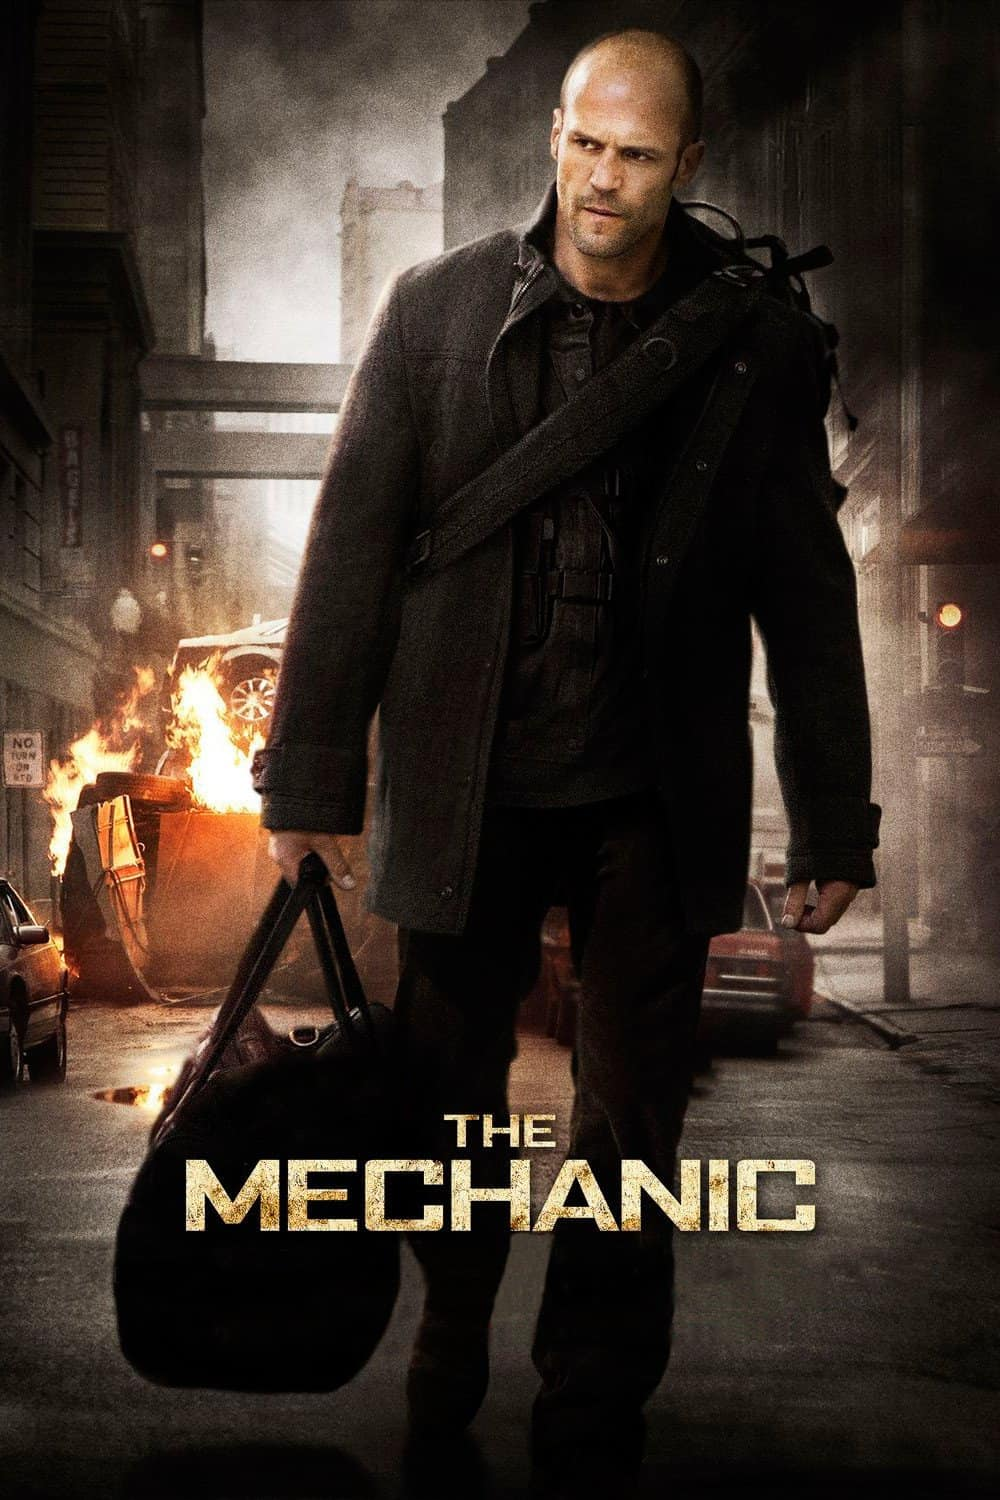 The Mechanic, 2011